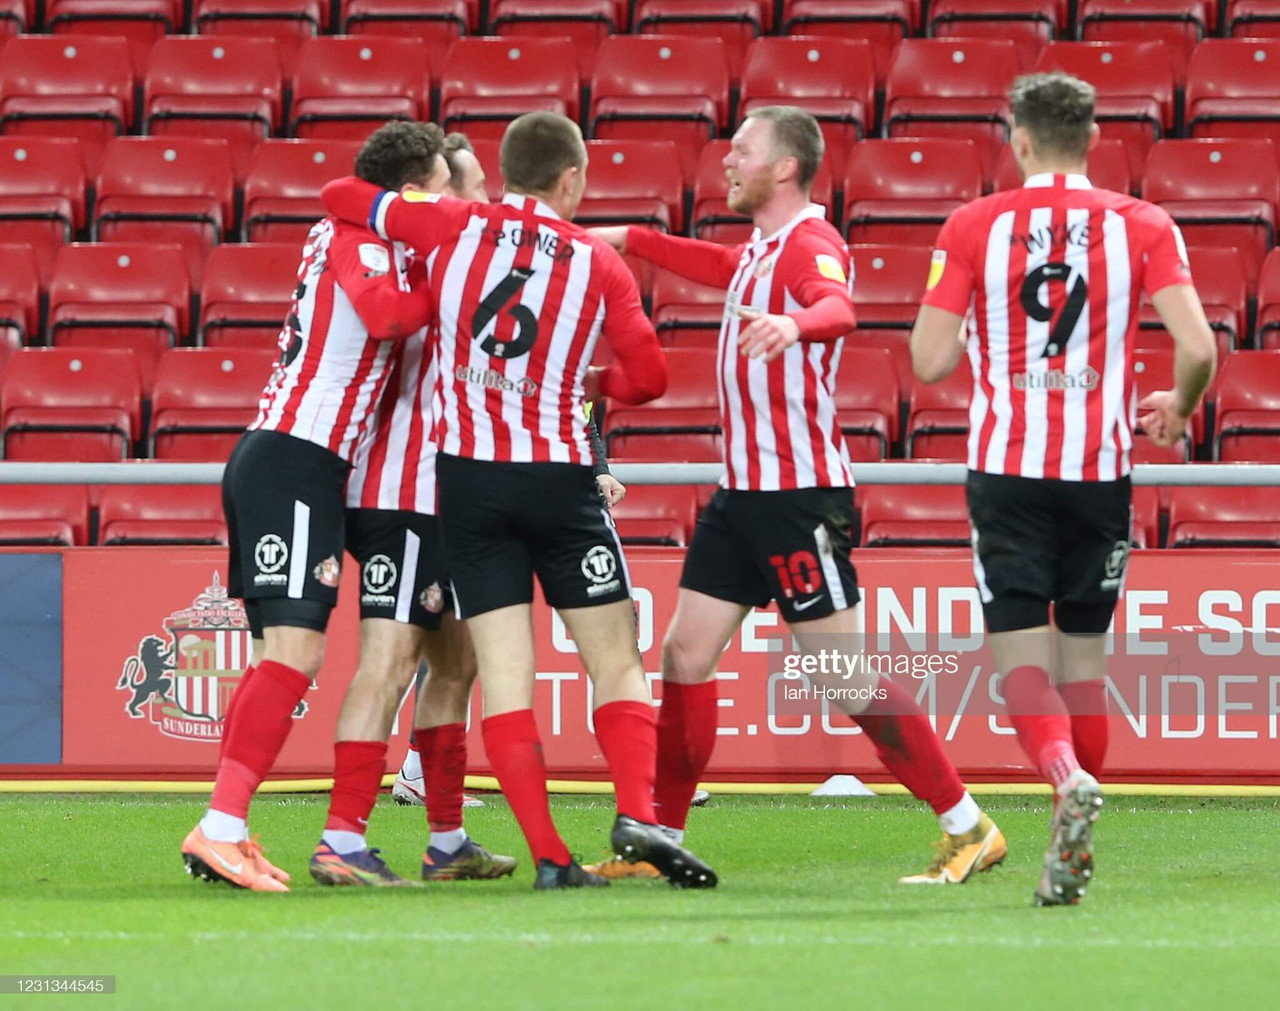 Sunderland 2-0 Fleetwood: Second half O'Brien and Power goals seal crucial win in promotion chase